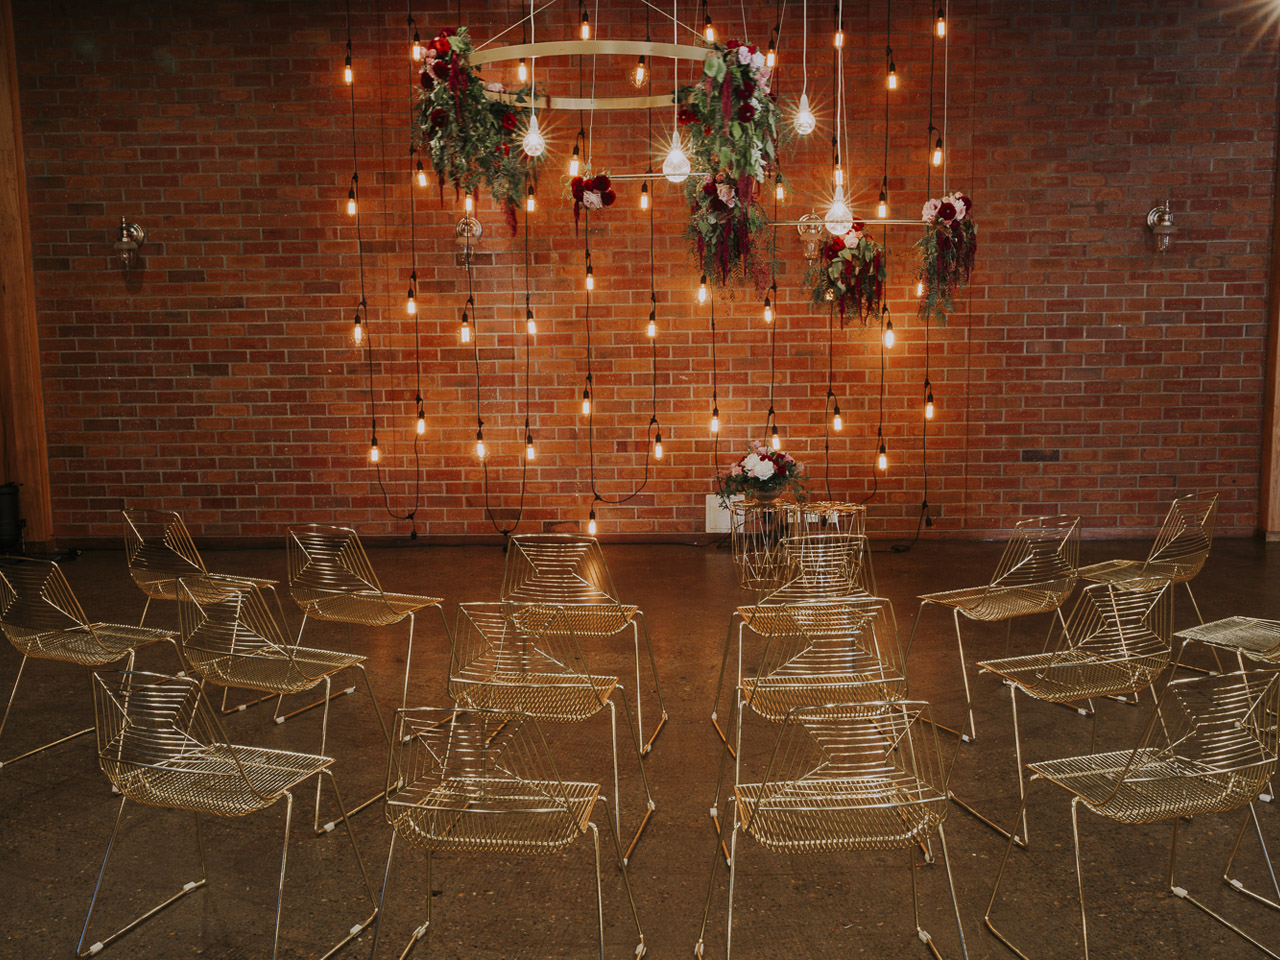 Brick wall decorated with lights with empty wire chairs ready for ceremony